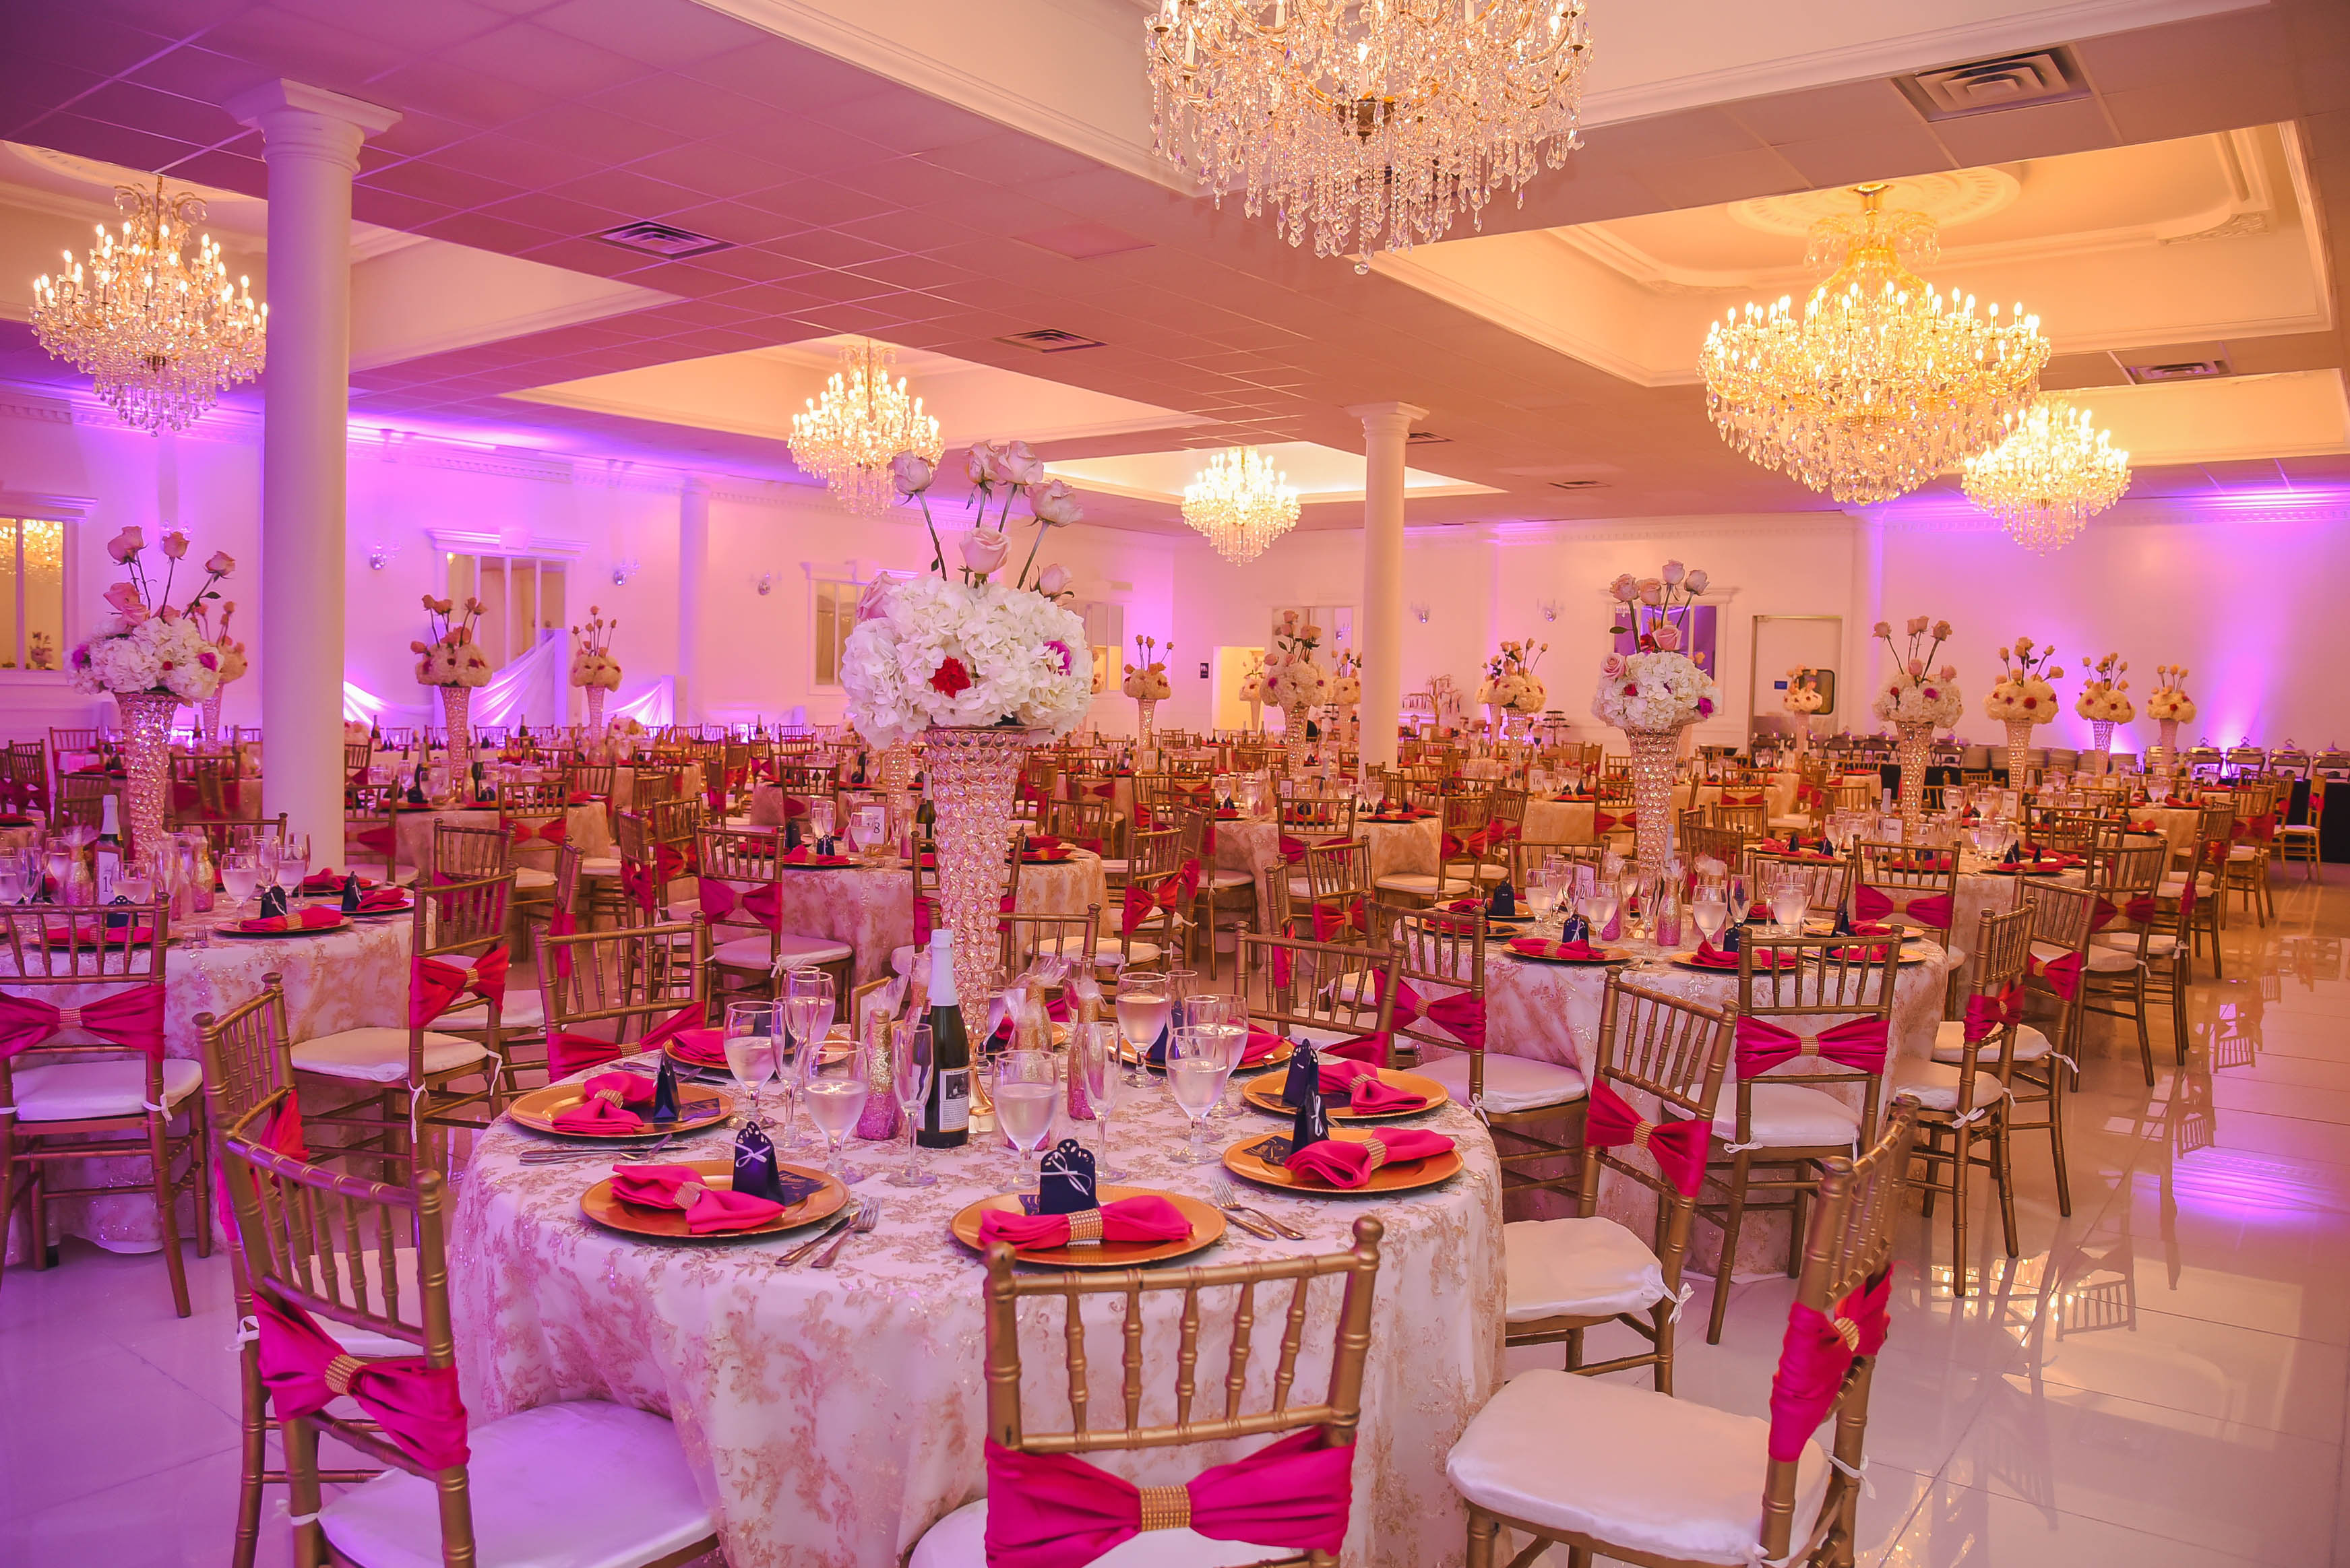 wedding chair covers orlando where to buy wicker chairs event packages imperial design fl 321 460 6368